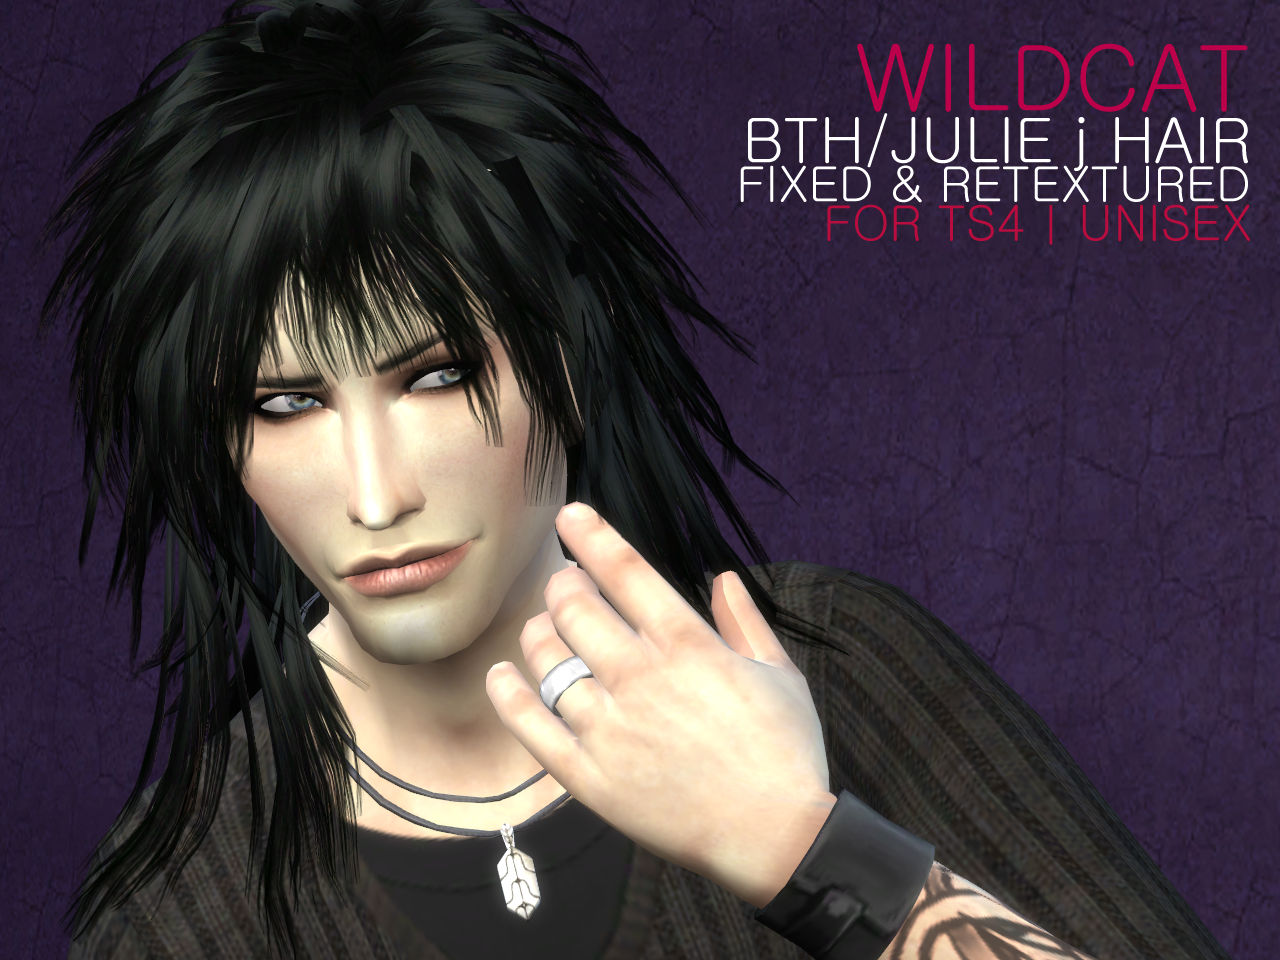 Sims 4 Hairs The Path Of Never More Wildcat Hair Retextured